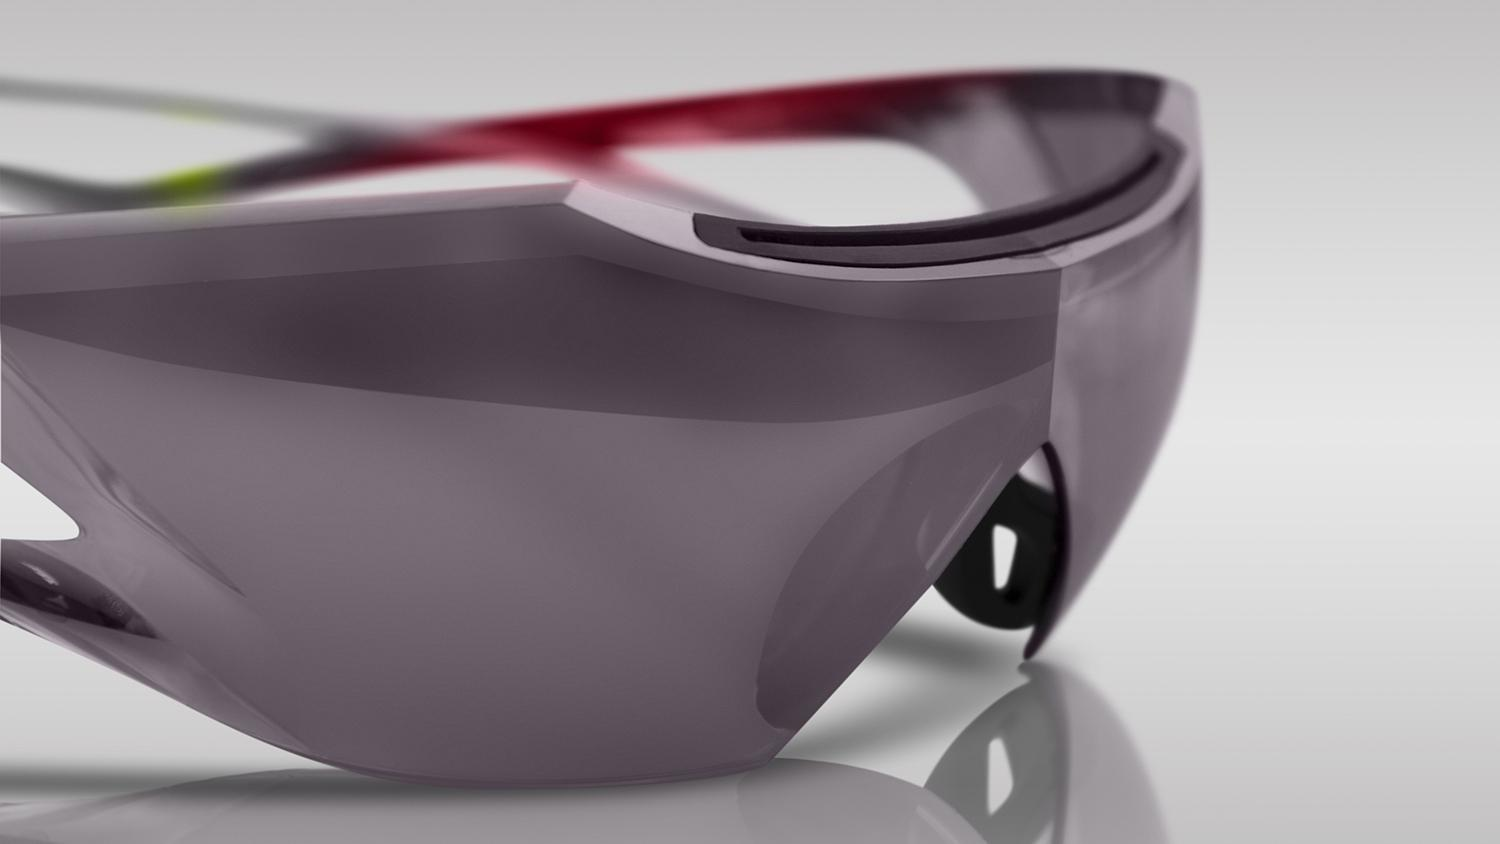 These Nike sunglasses cost more than the Oculus Rift and HTC Vive